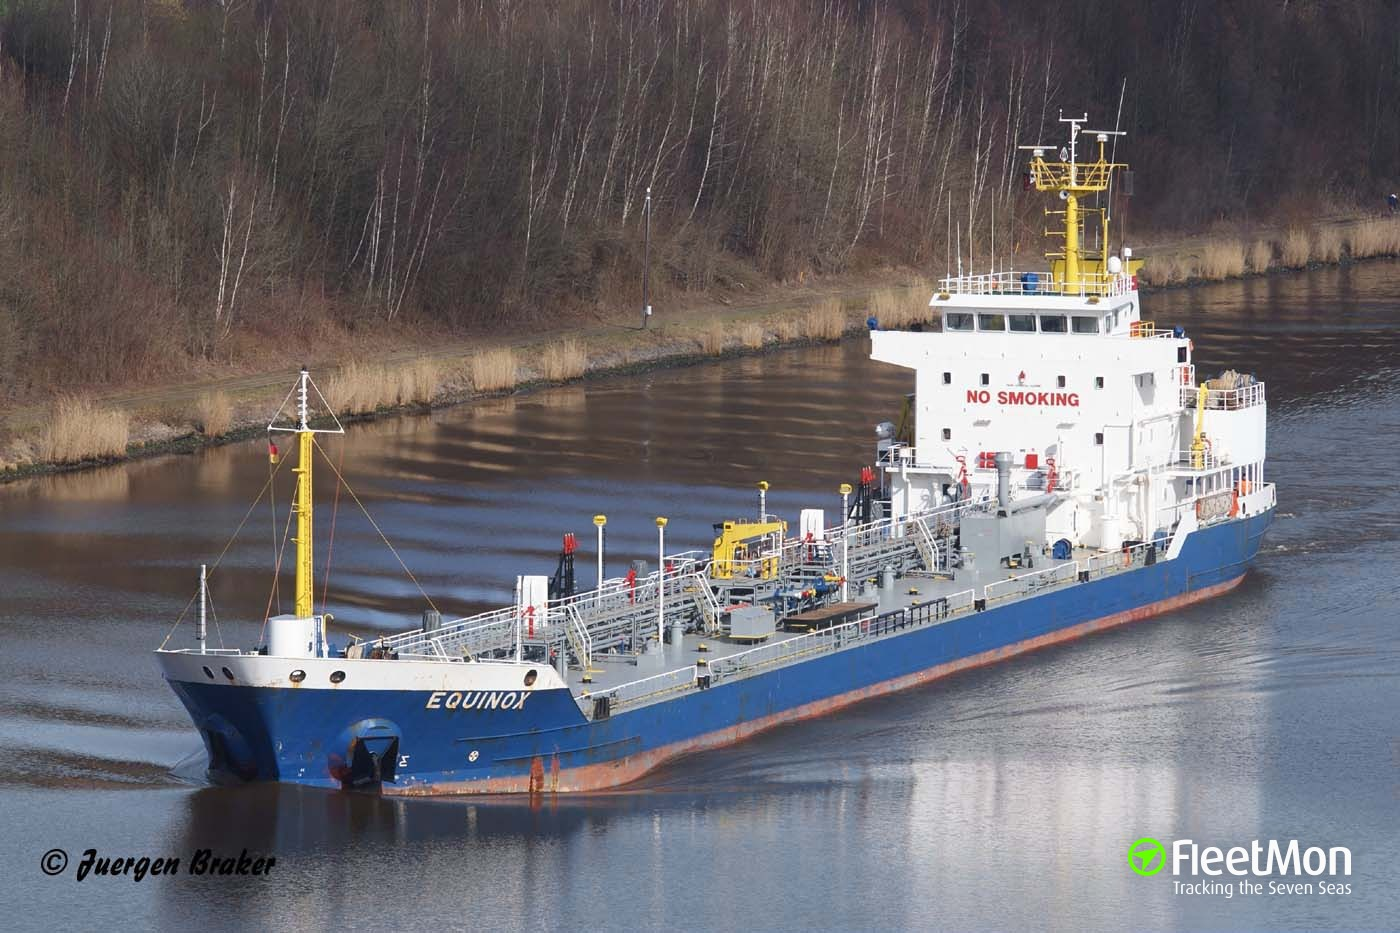 Product tanker Equinox Master and Chief Engineer freed from the captivity, Nigeria